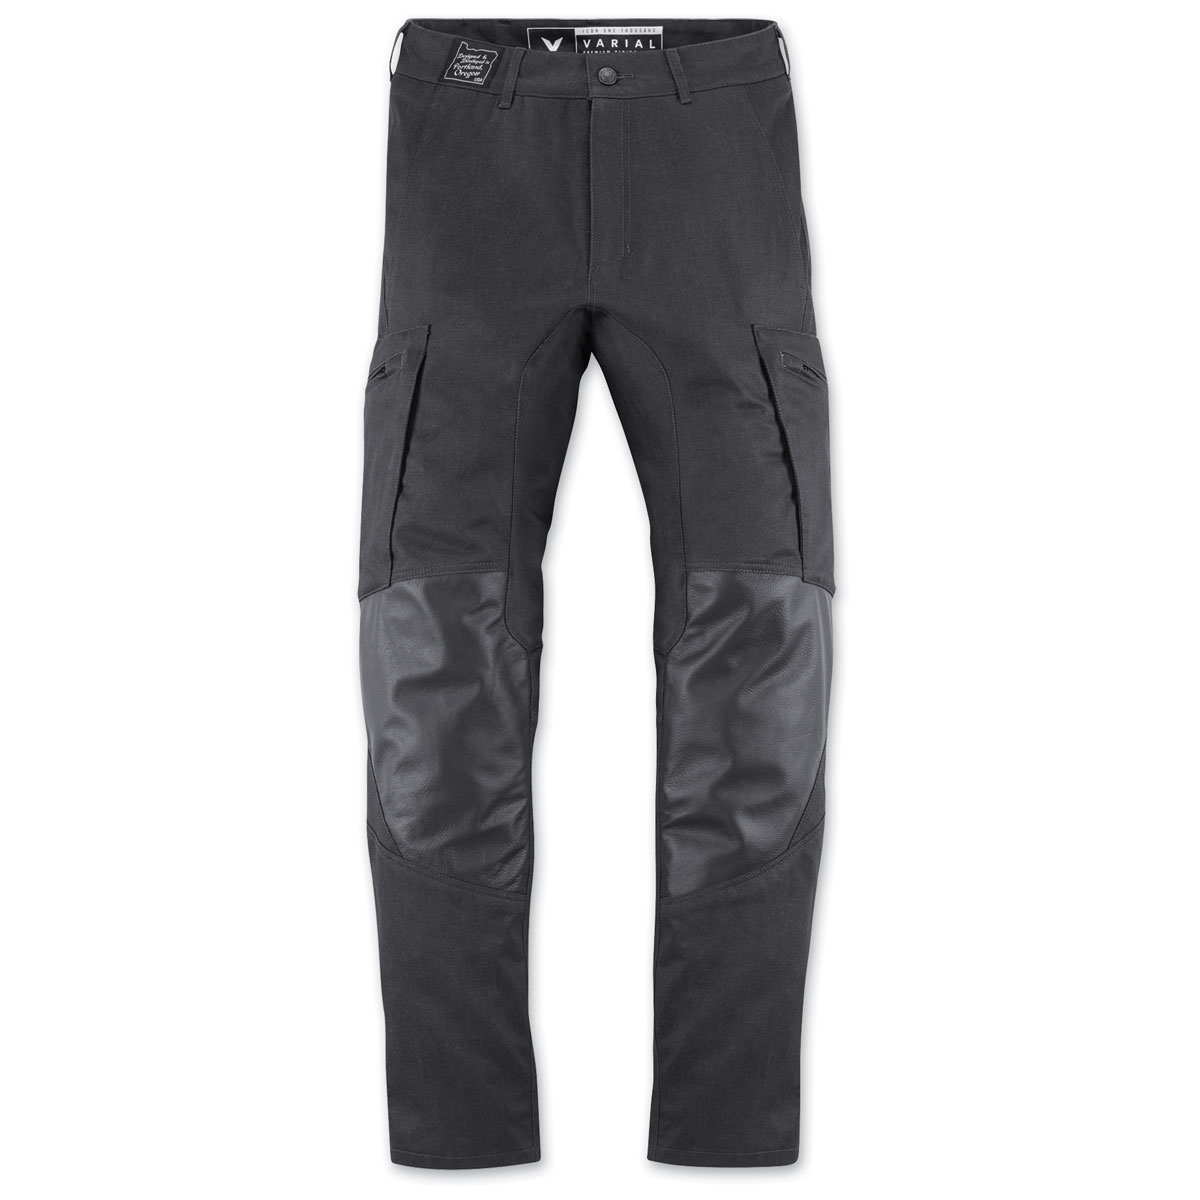 ICON One Thousand Men's Varial Black Pants